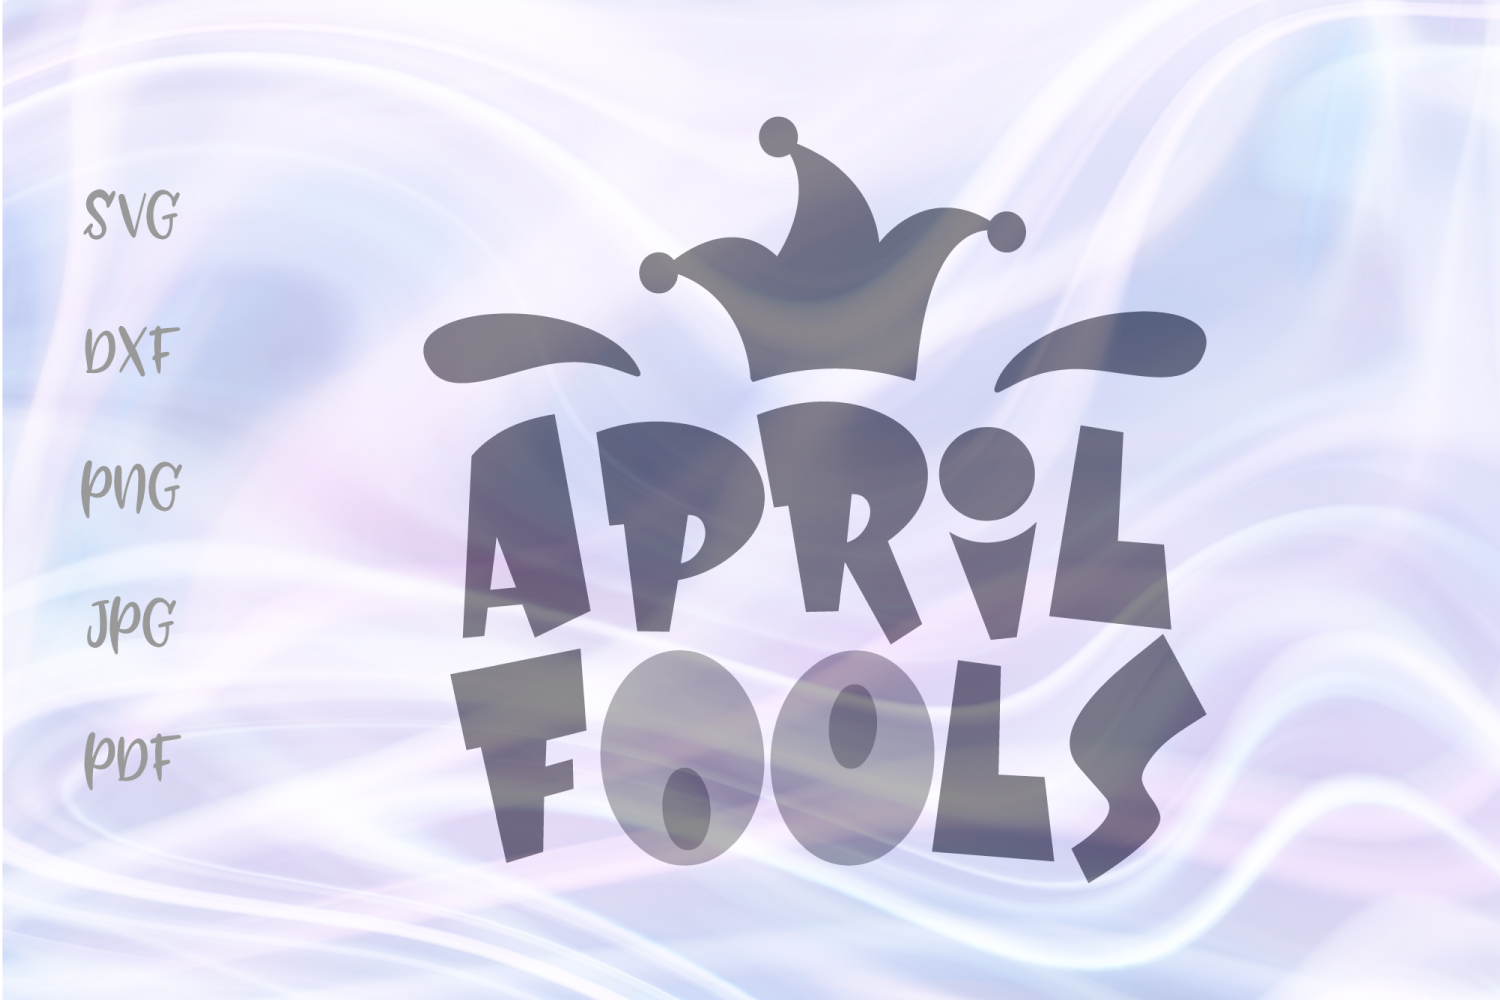 Download Free April Fools Day Sign Funny Props Graphic By Digitals By Hanna for Cricut Explore, Silhouette and other cutting machines.